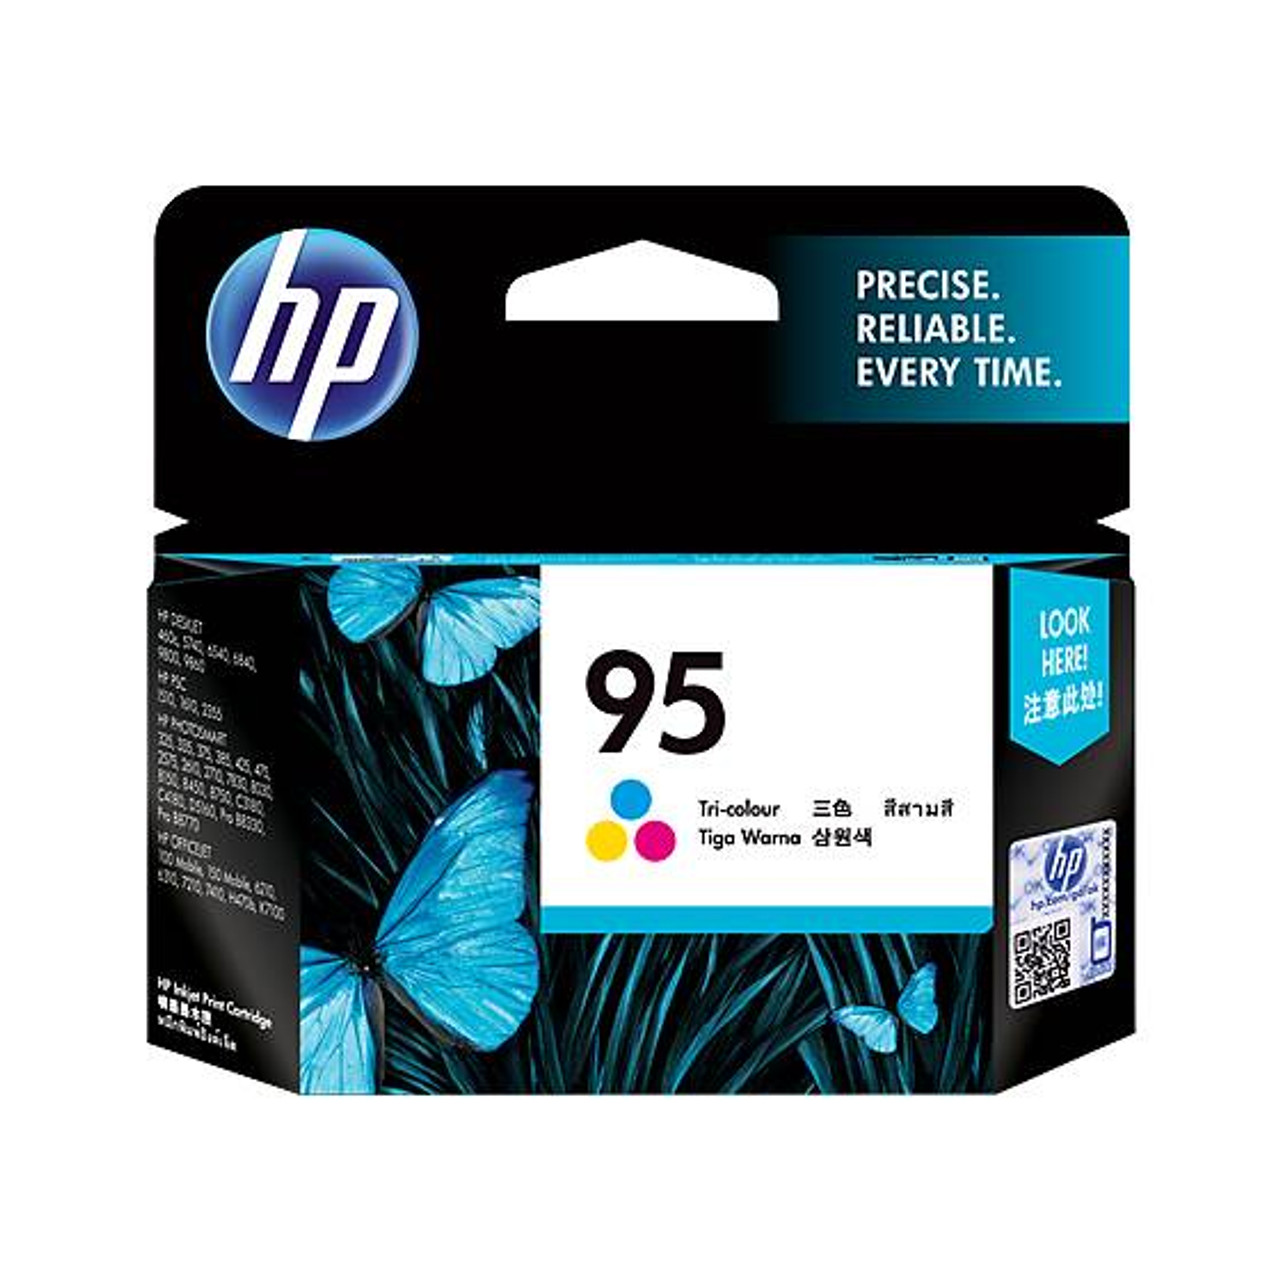 Image for HP 95 Color Inkjet Cartridge 260 pages (C8766WA) CX Computer Superstore